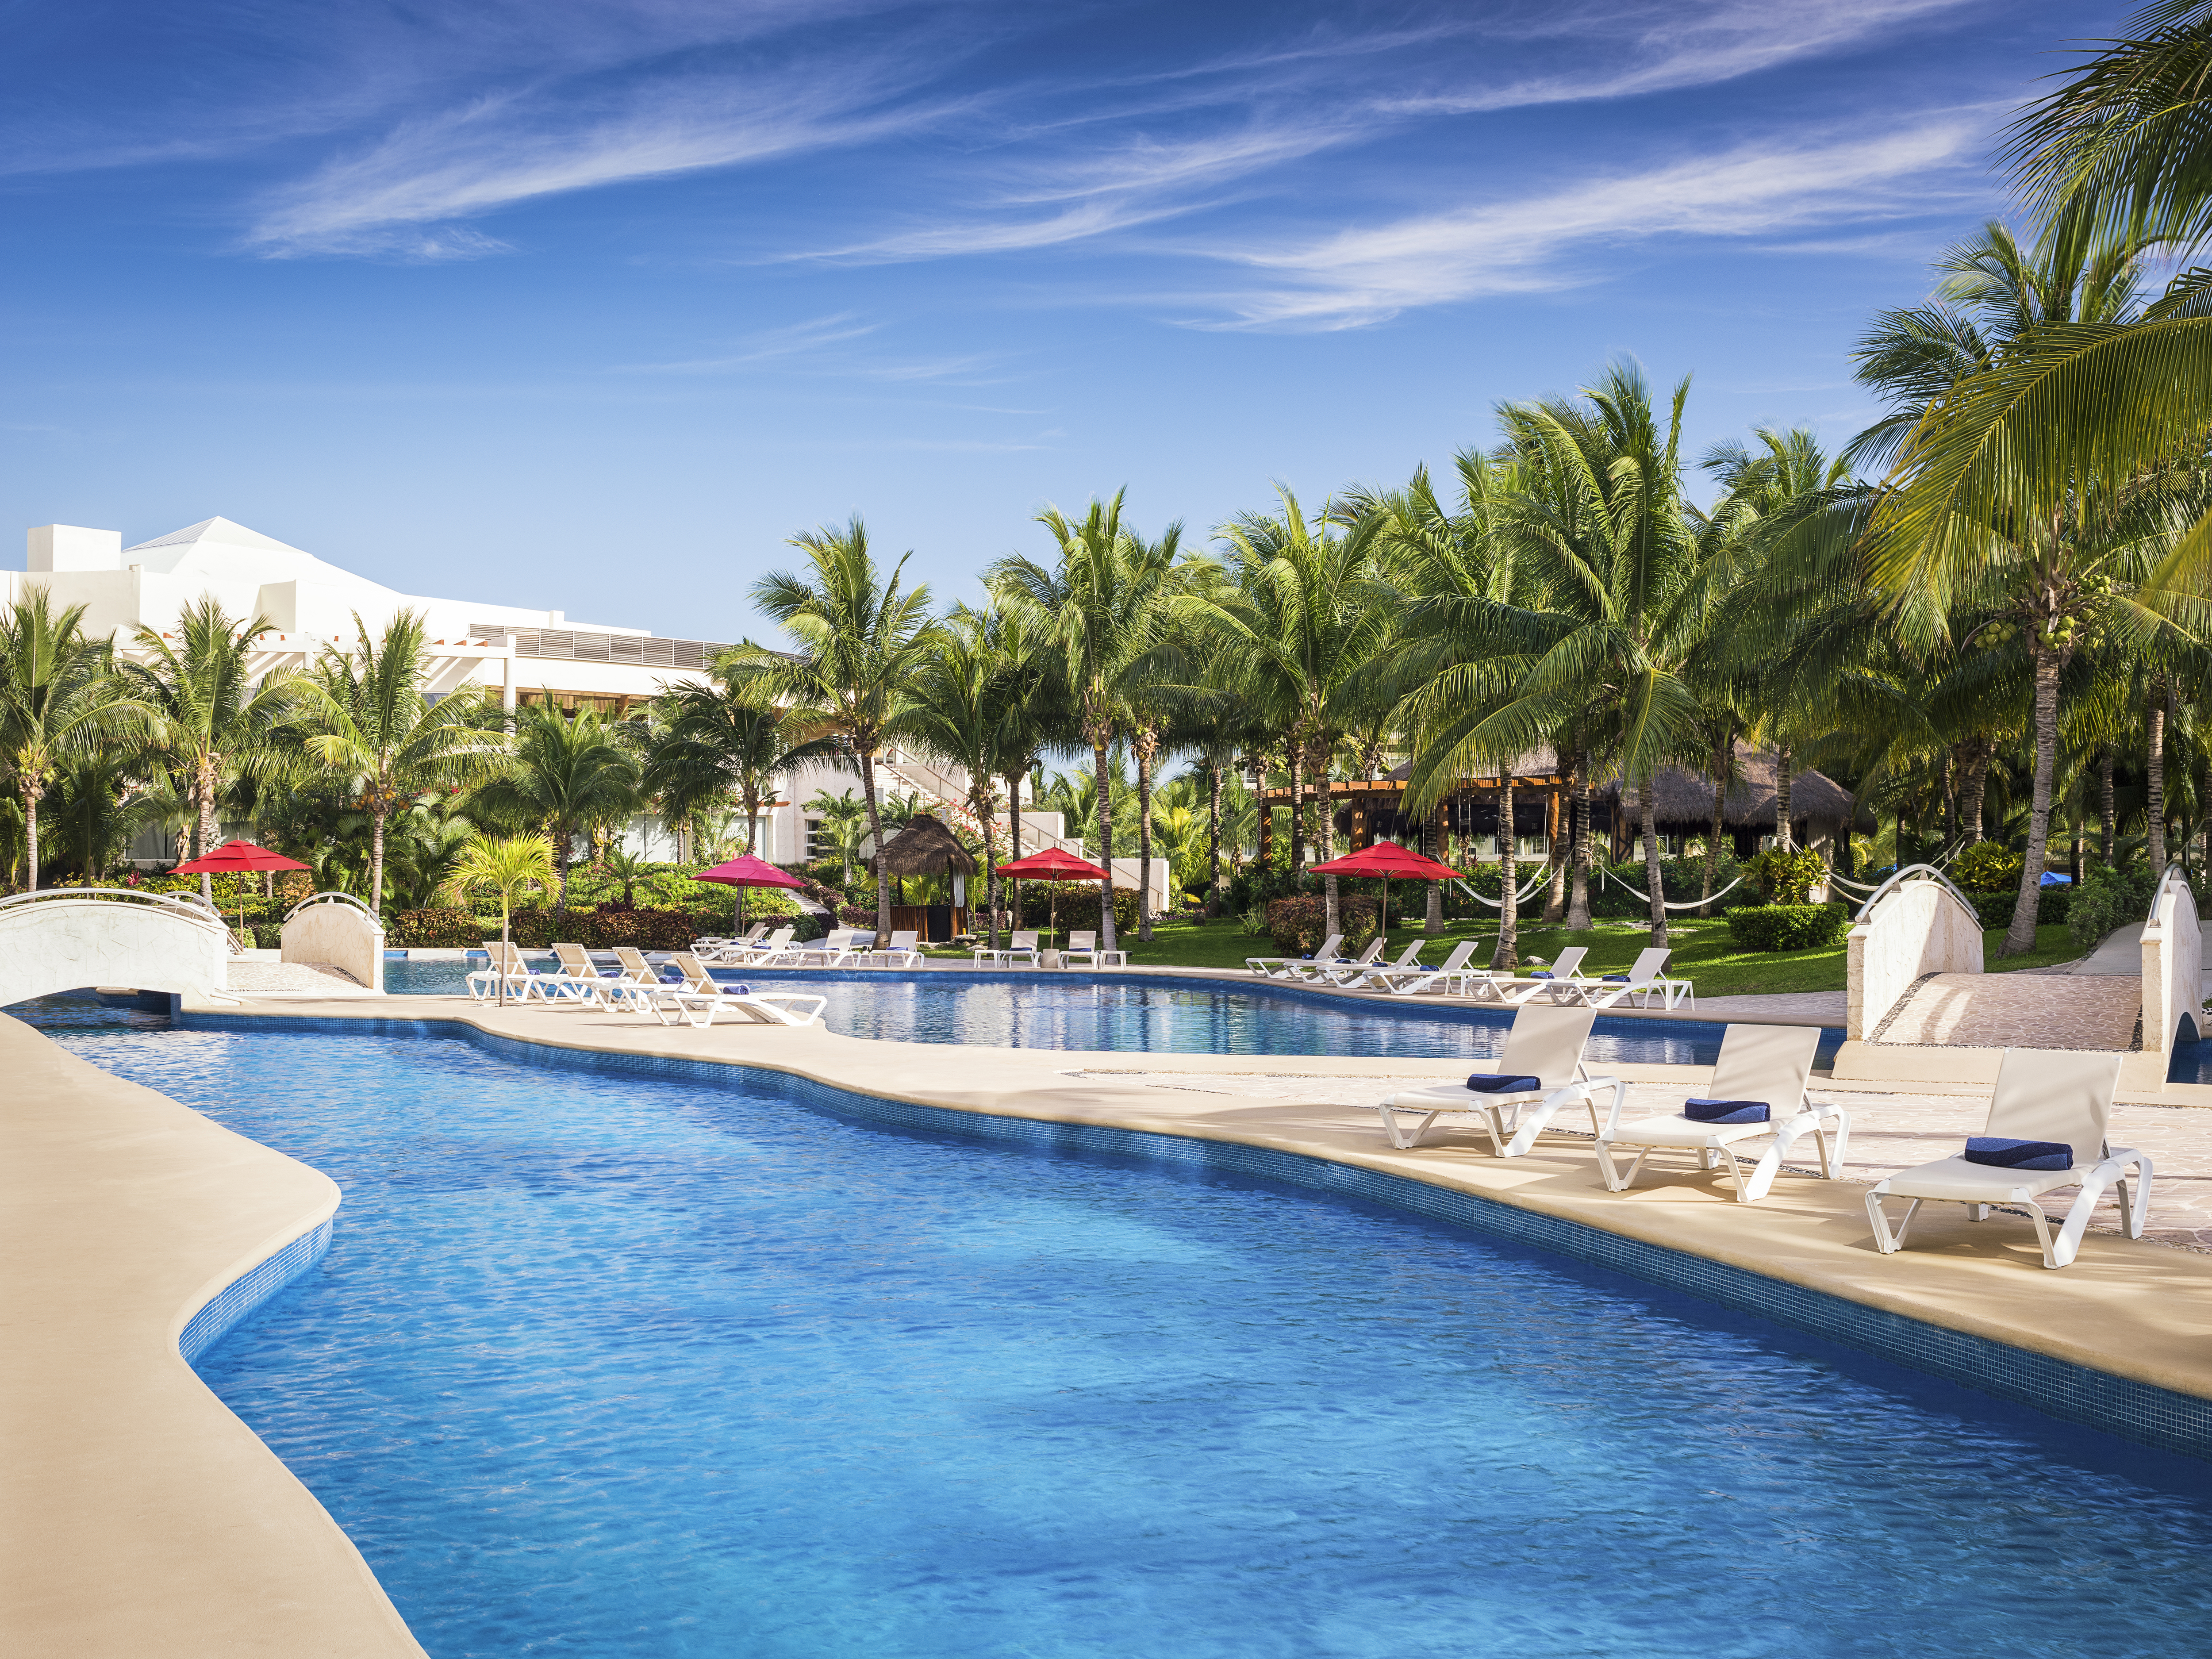 Travel Agency All-Inclusive Resort Azul Sensatori Riviera Cancun 04